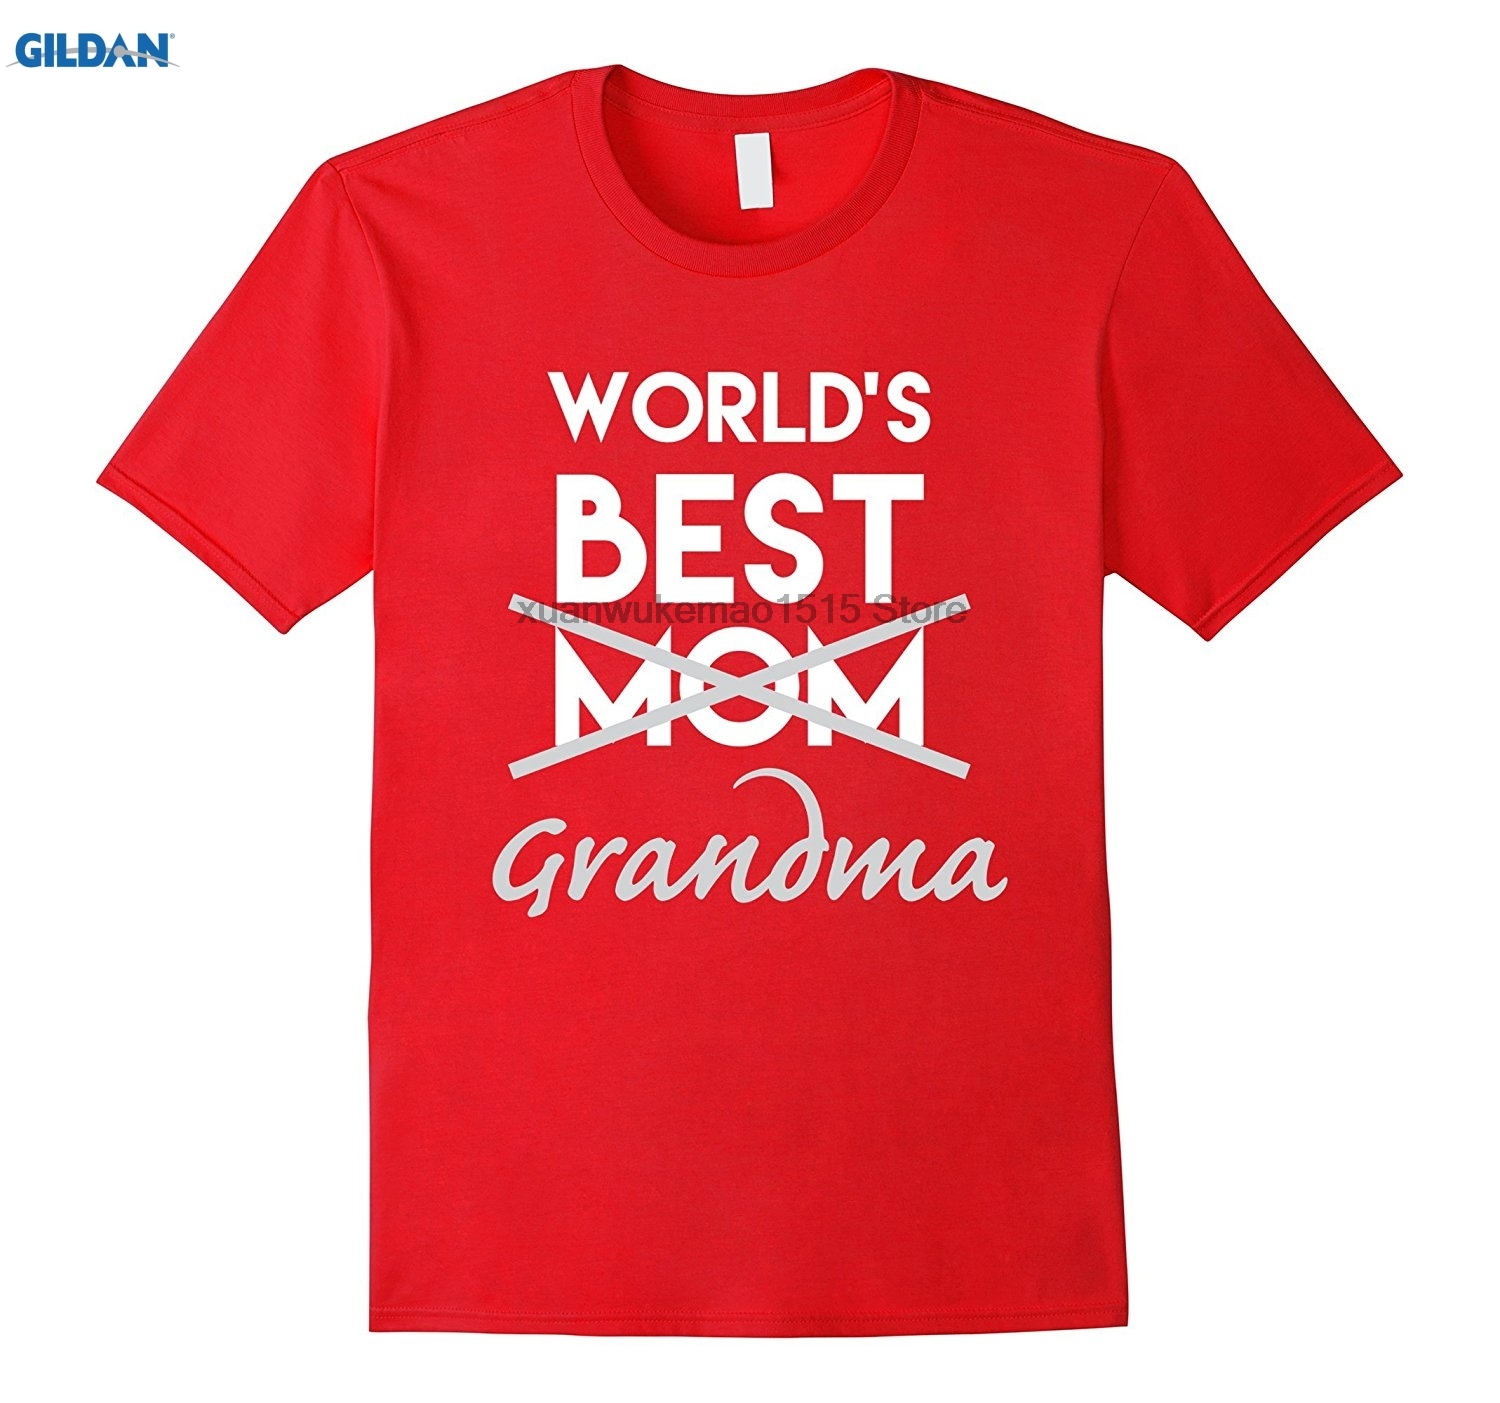 GILDAN 100% Cotton O-neck printed T-shirt Worlds Best Mom Grandma Shirt Funny Pregnancy  ...